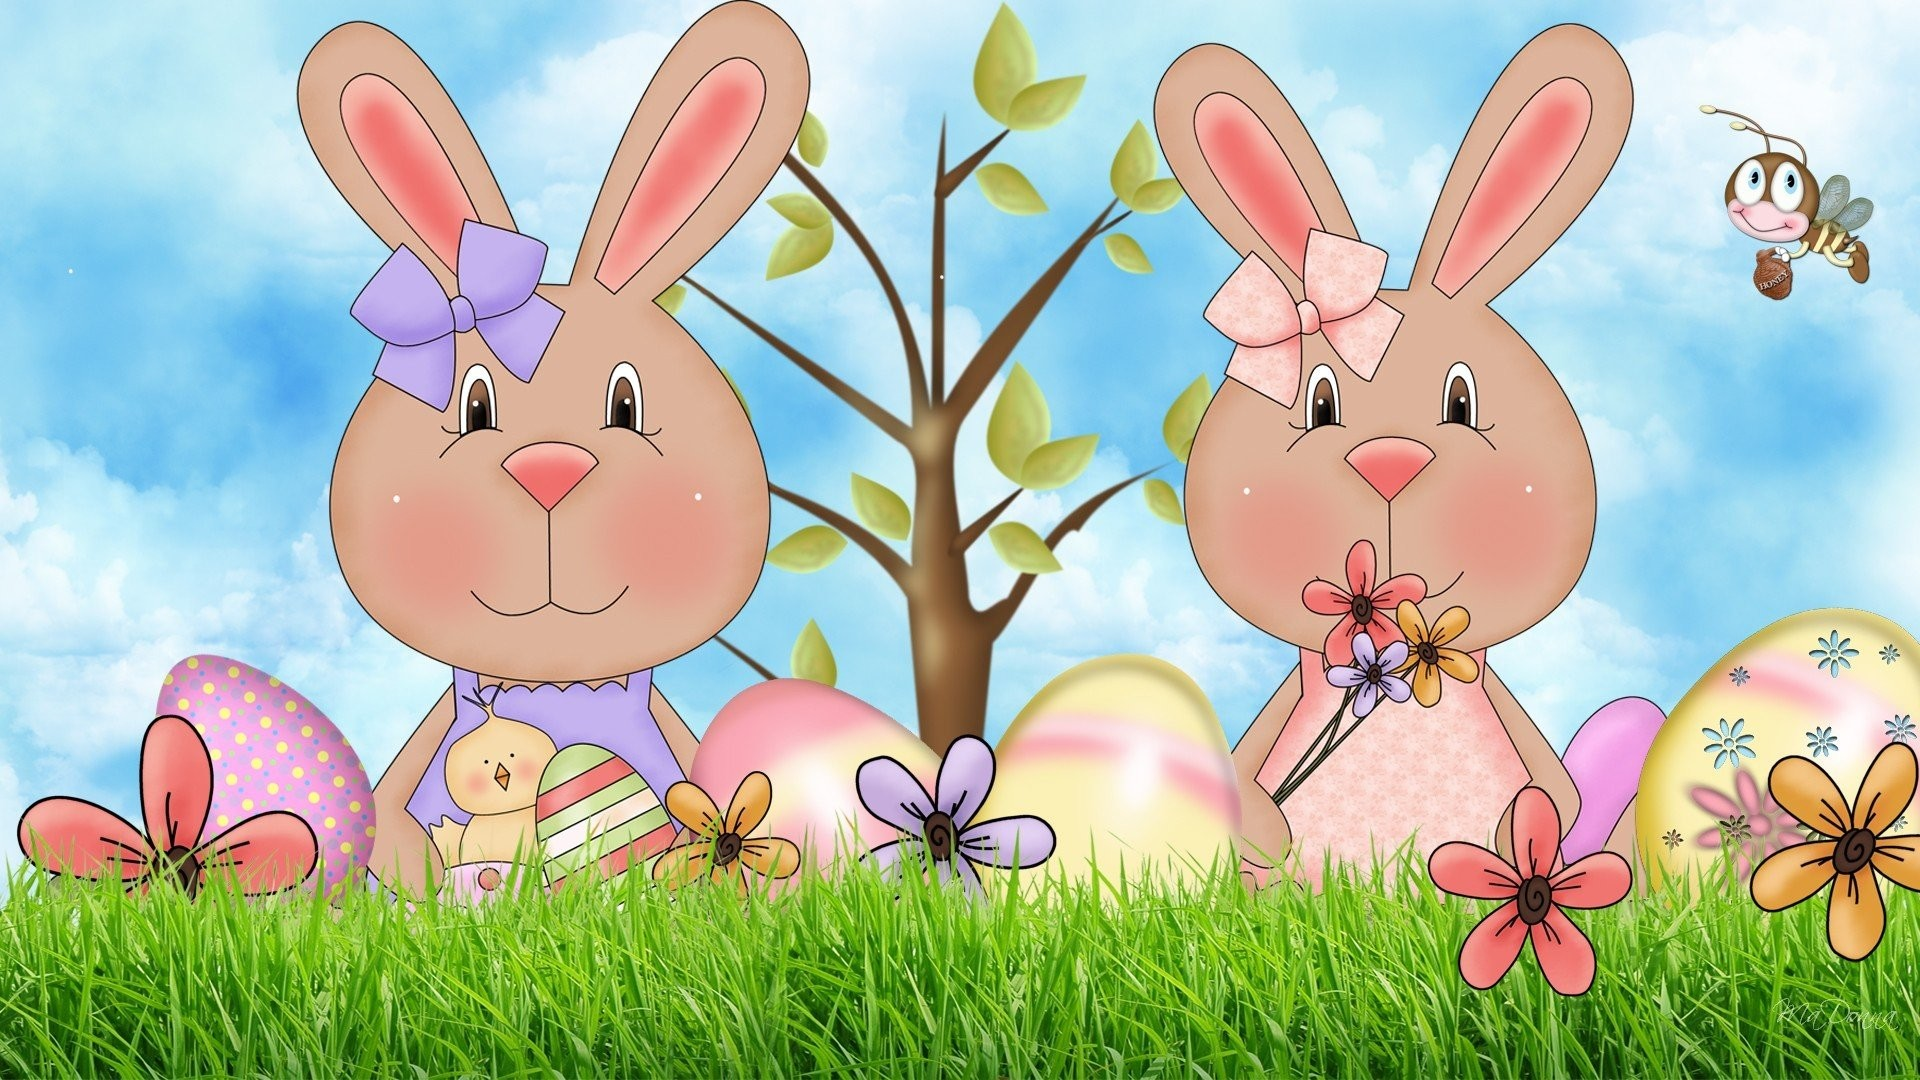 1920x1080 Happy Easter Wallpapers HD | HD Wallpapers, Gifs, Backgrounds, ...